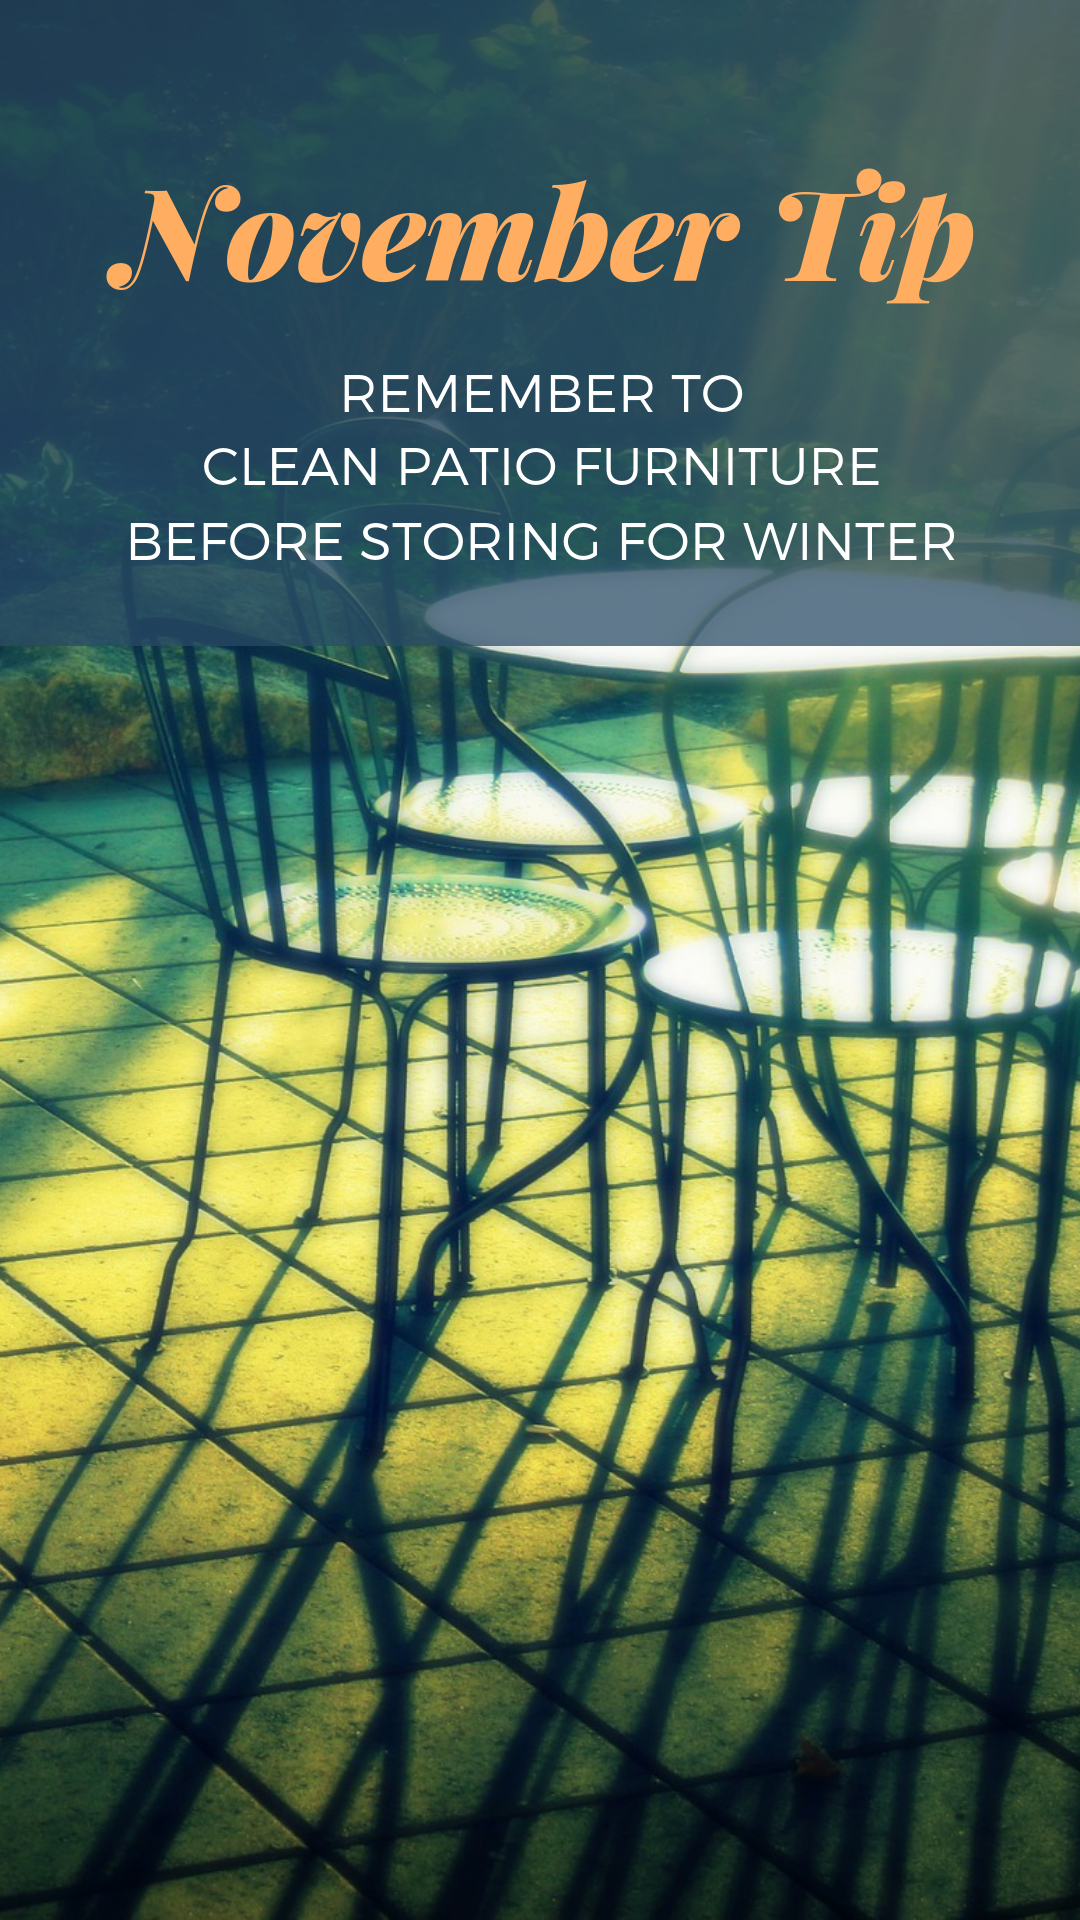 November home maintenance tips from Live in MT Real Estate Clean Patio Furniture Before Storing